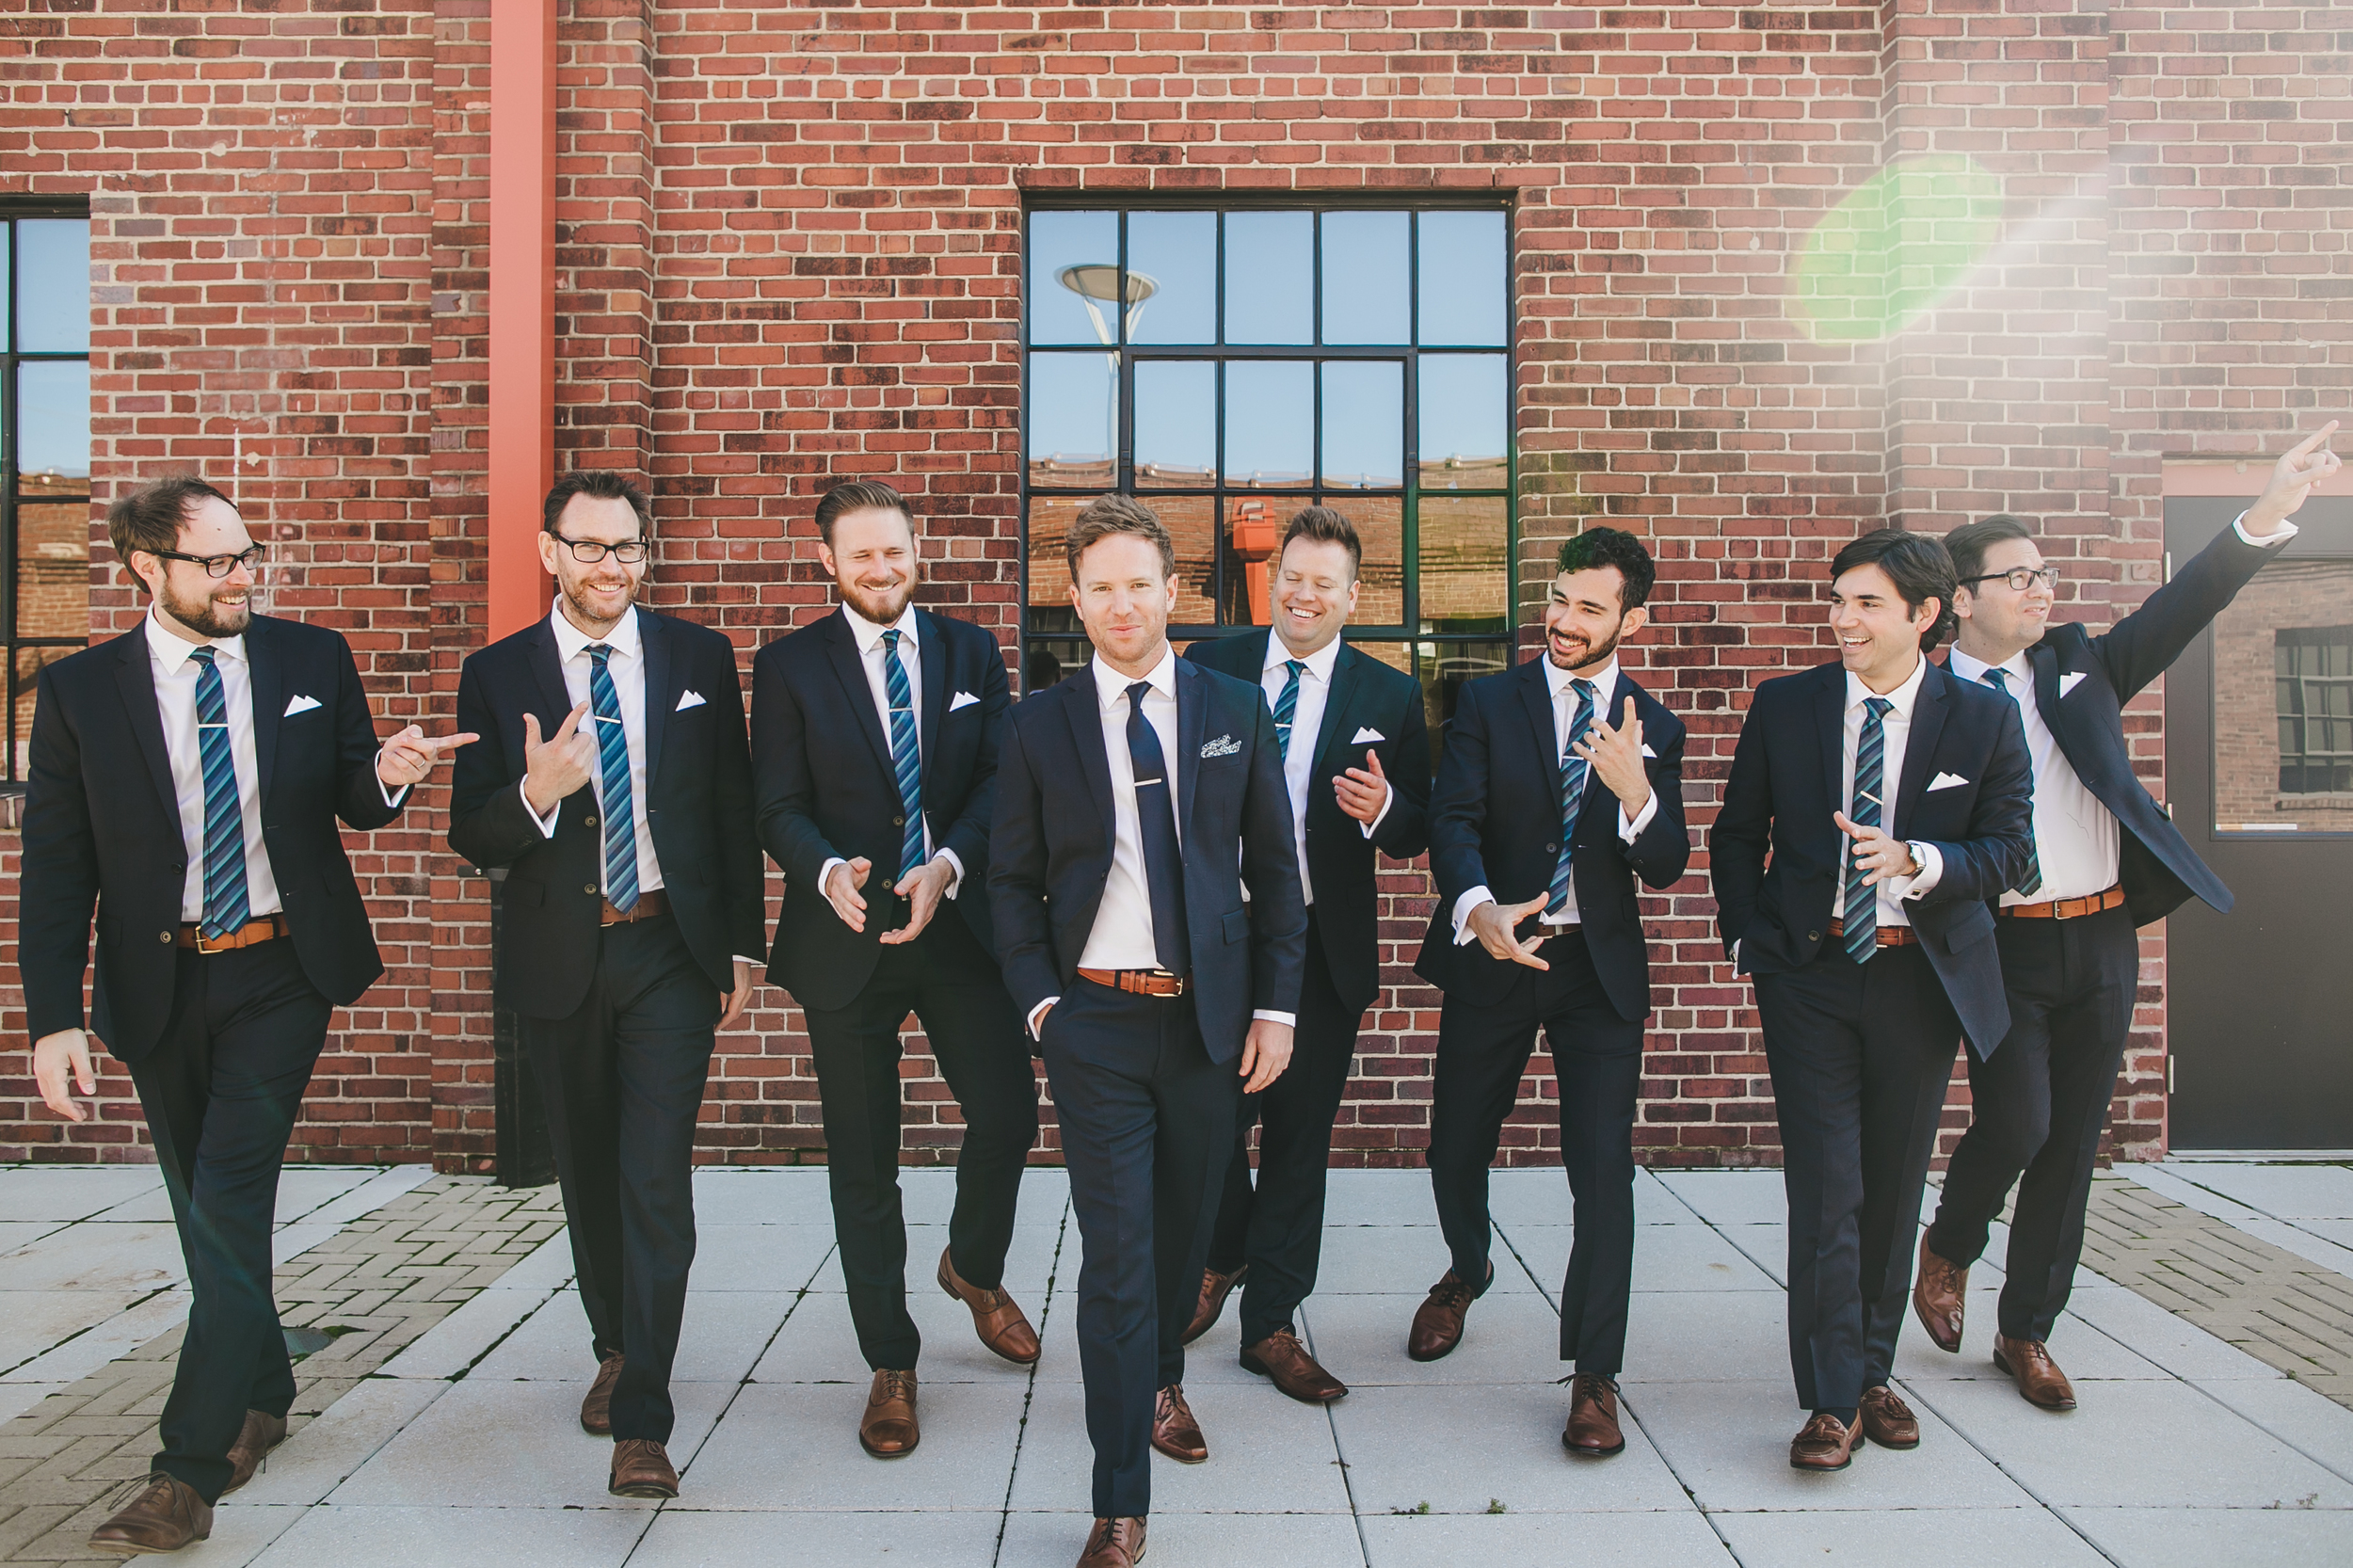 Kneale_Wedding_Groomsmen